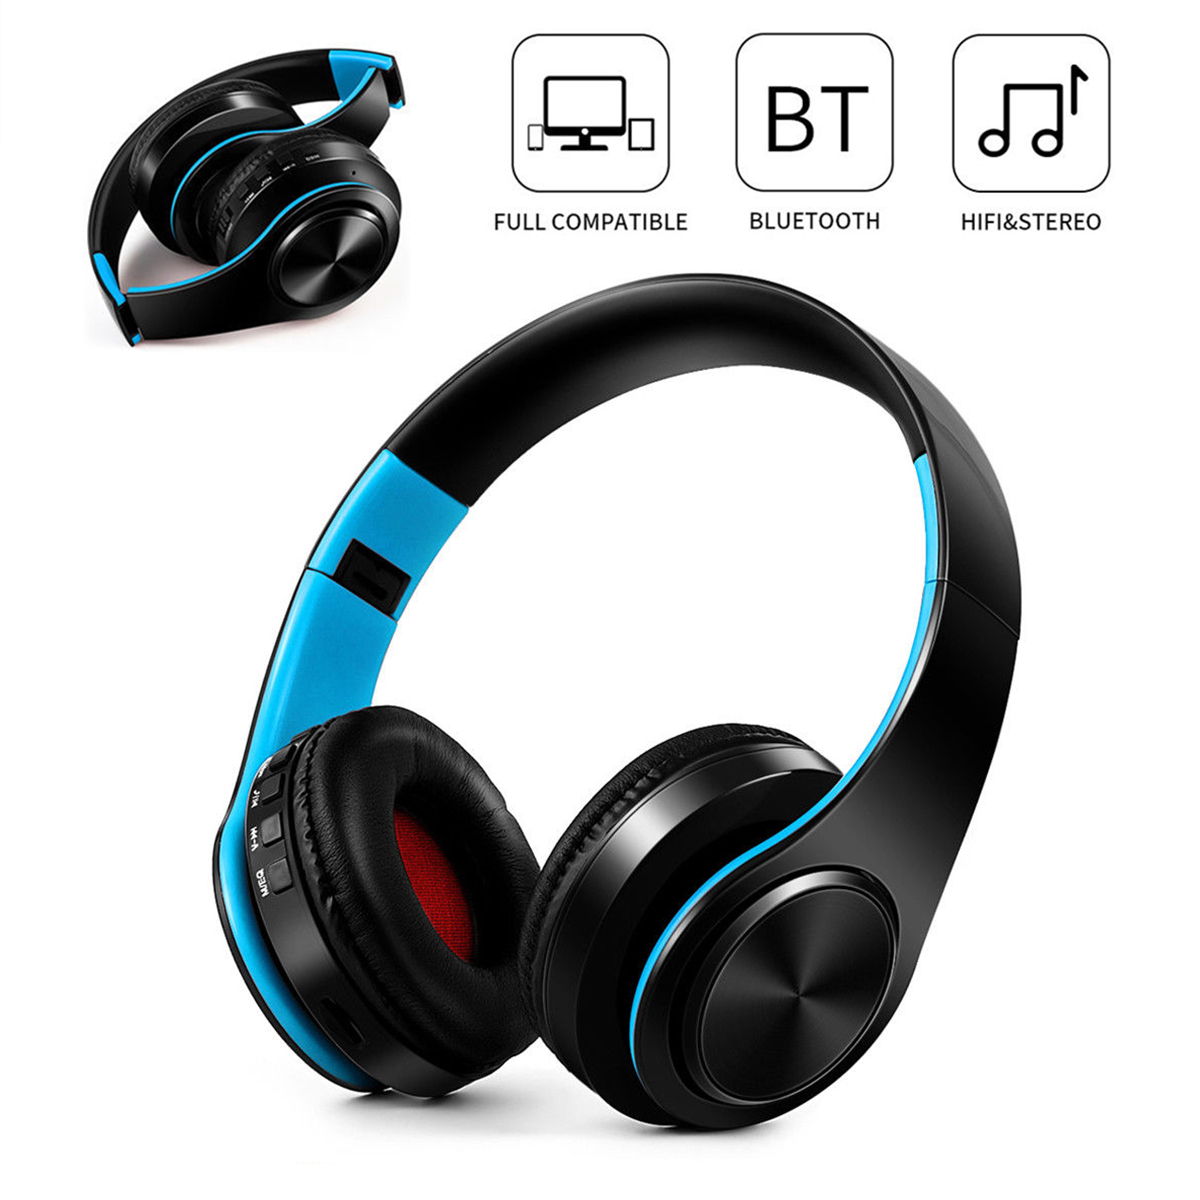 On Ear Noise Cancelling bluetooth Headphones HI-FI Stereo Surround Rechargeable Foldable Wireless Headsets for Cell Phone, Tablet PC Laptop, MP3/4, Video Game